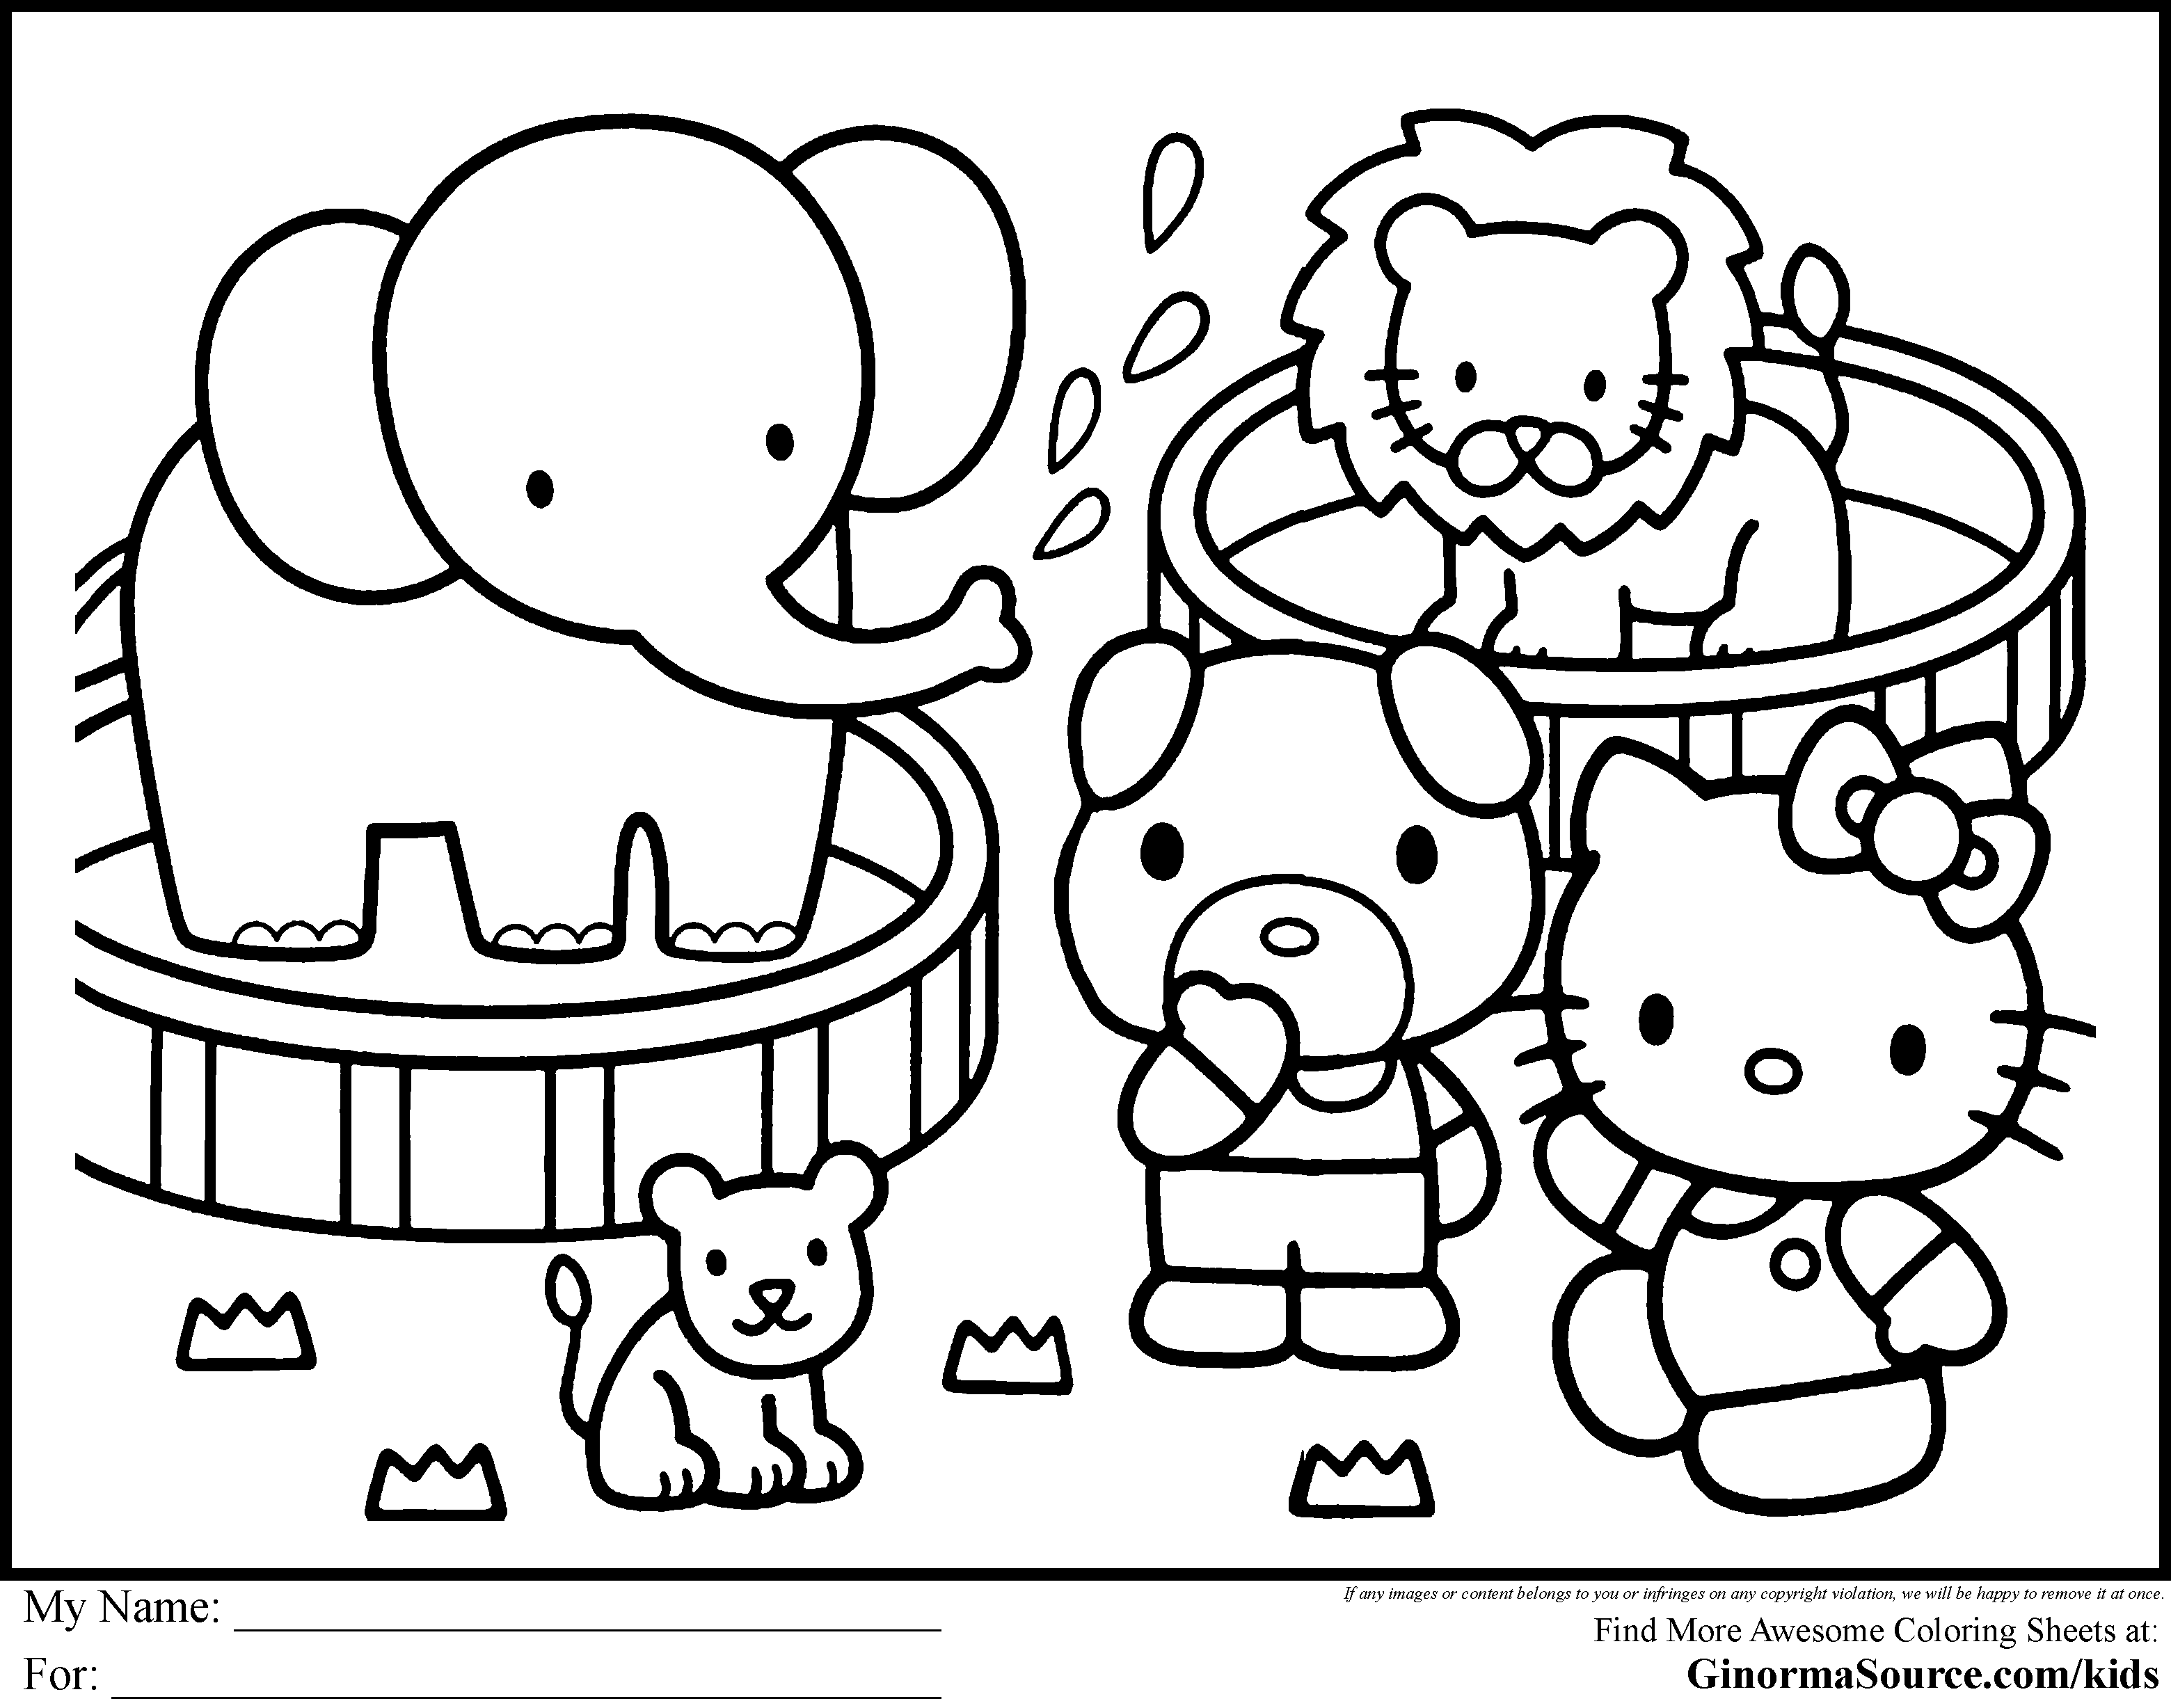 Coloring pages free printable hello kitty